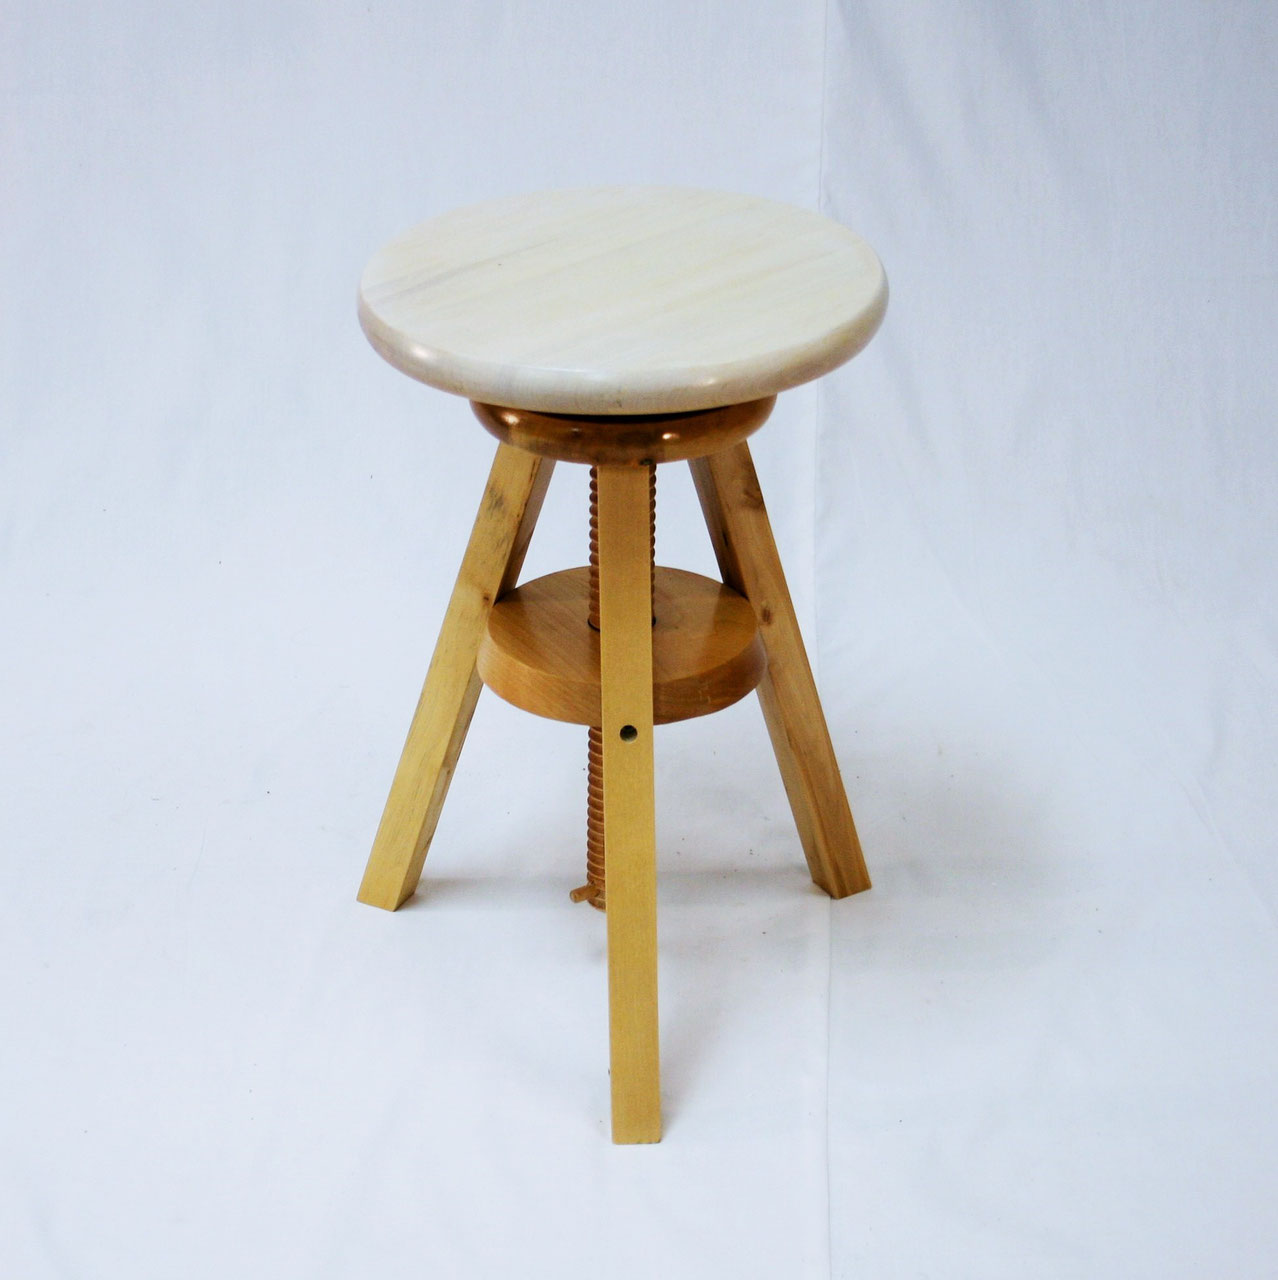 Wooden Adjustable Stools With White Seats Ehemco